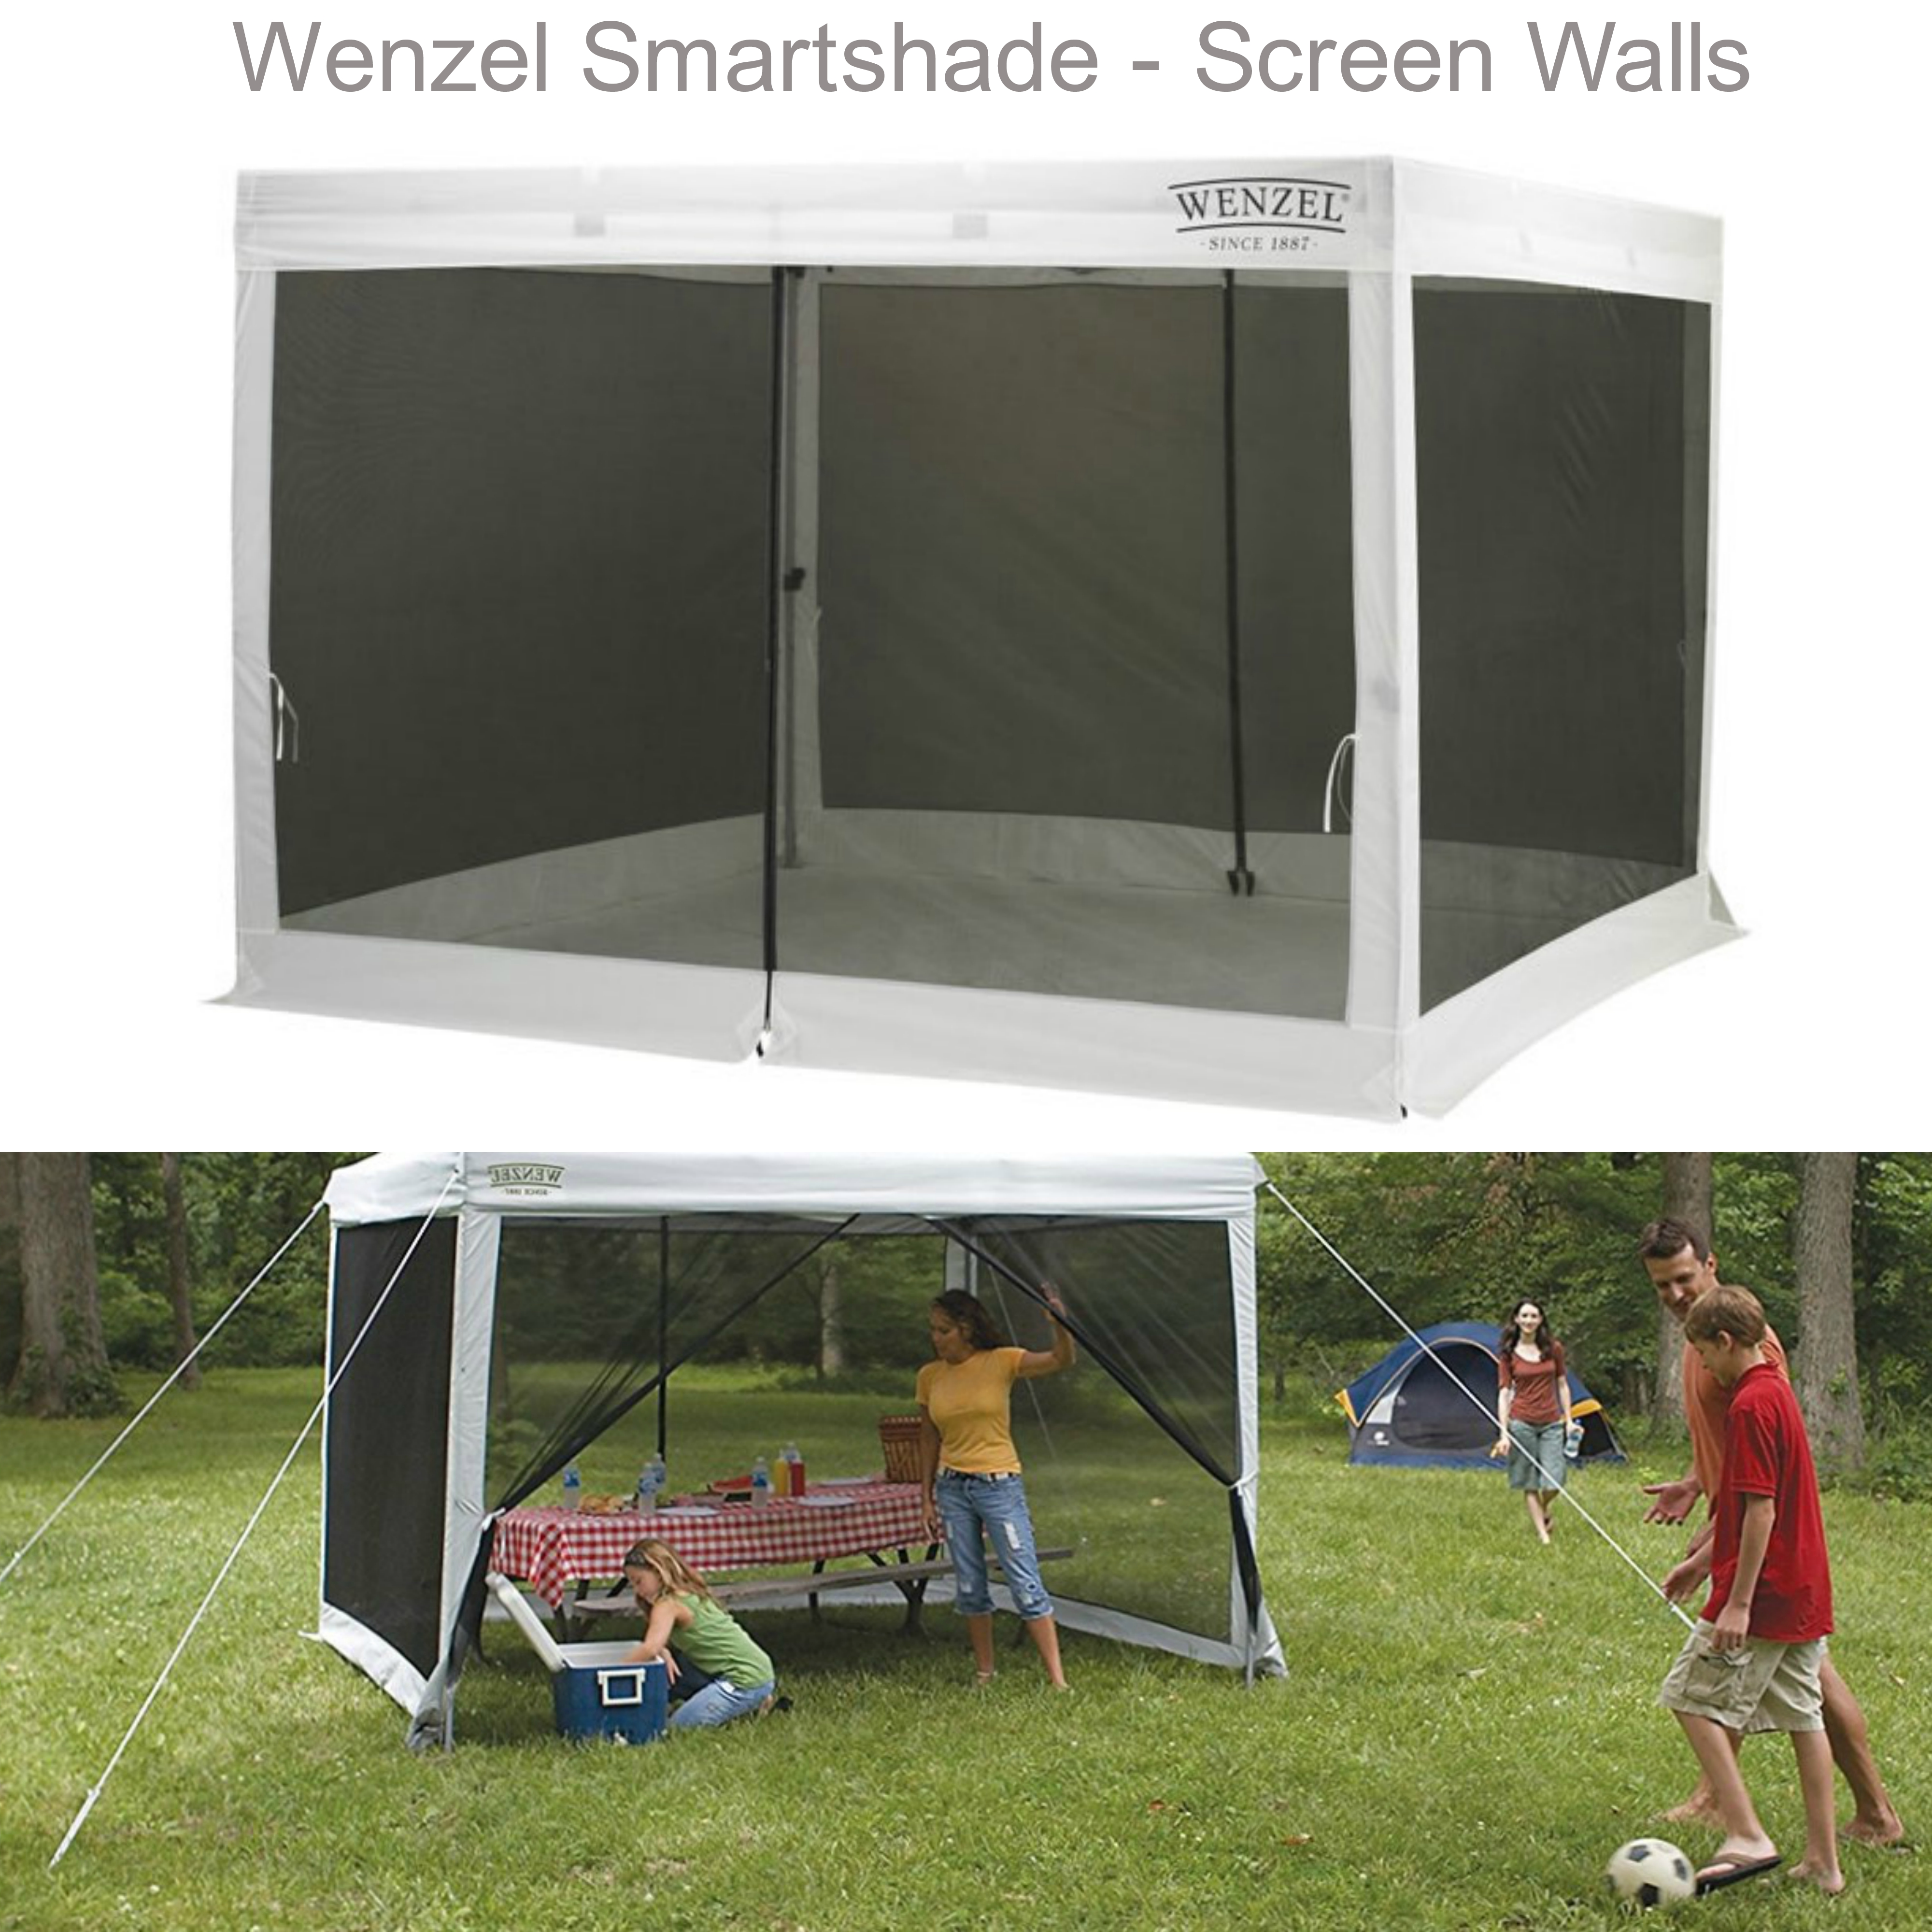 NEW Wenzel Strong Polyester SmartShade Screen Walls Insects Protector 861-33049